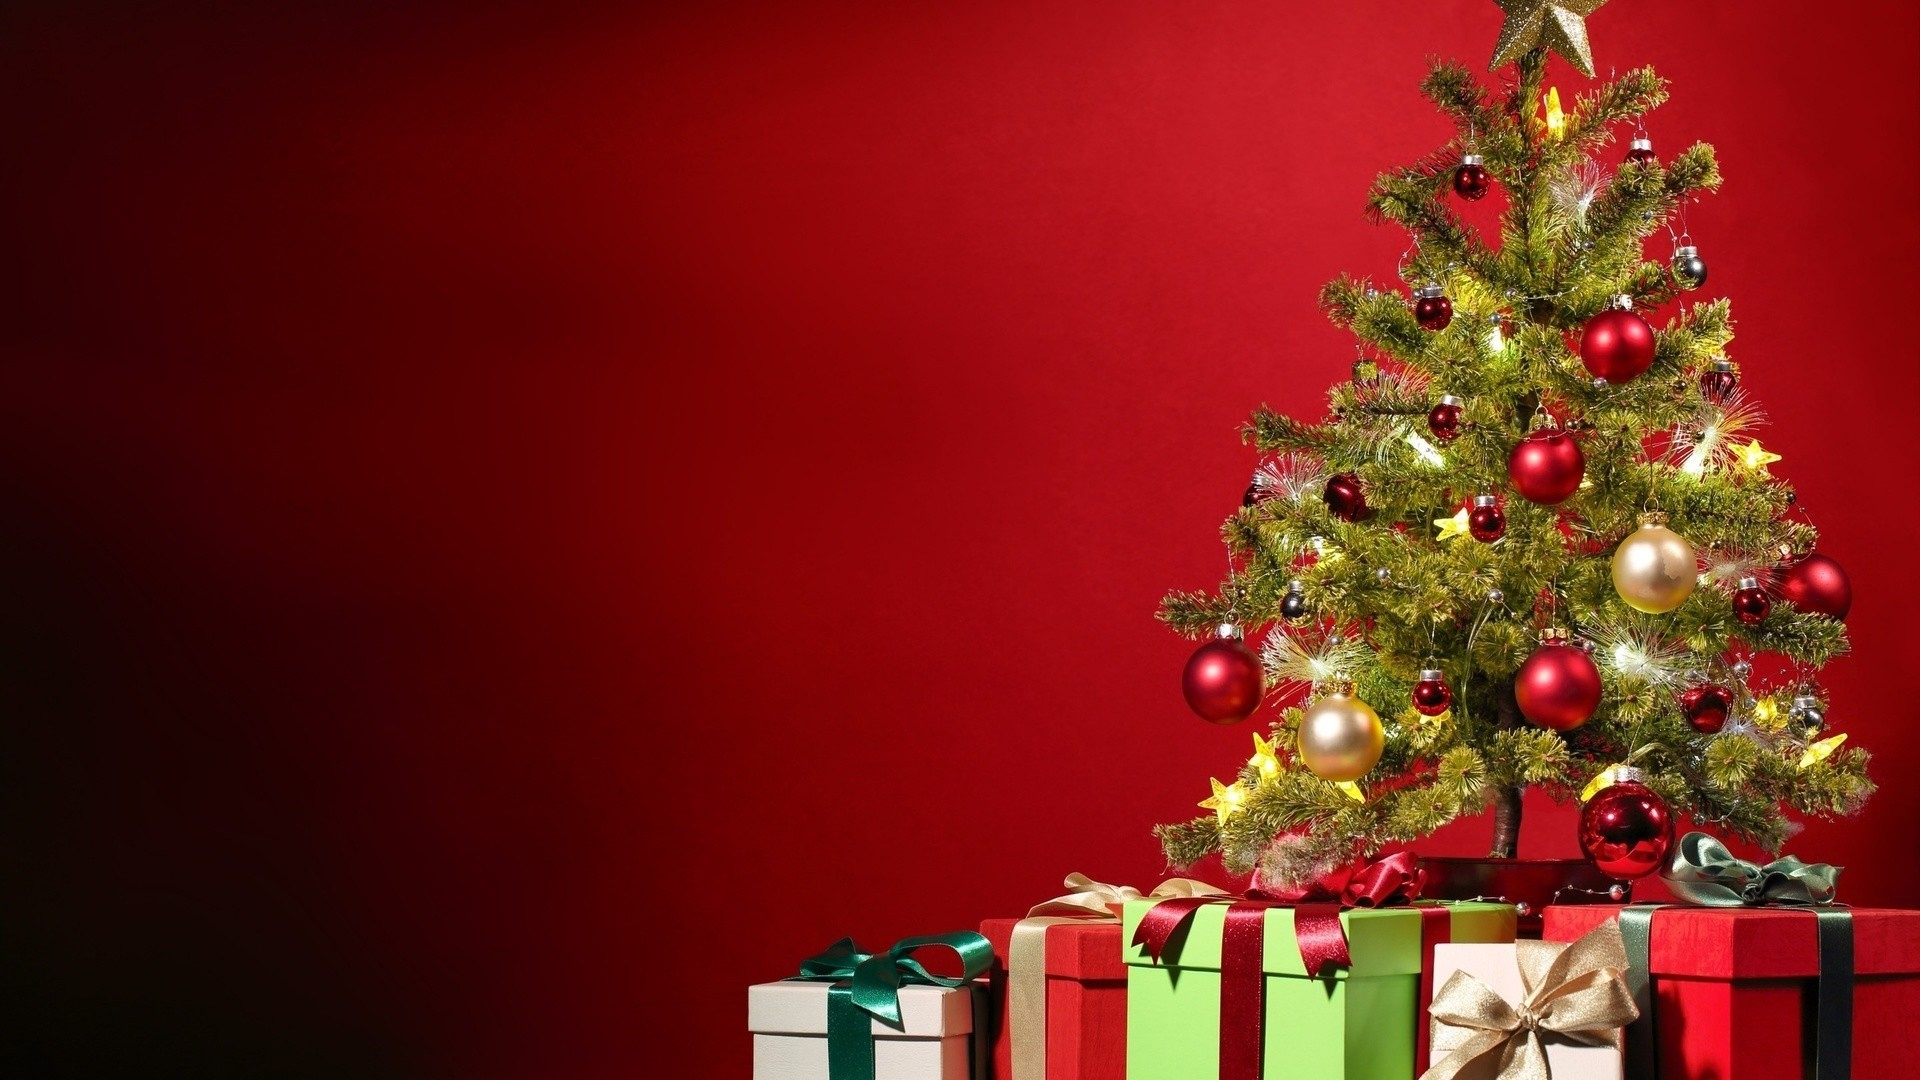 Merry Christmas tree free download wallpaper – 2016